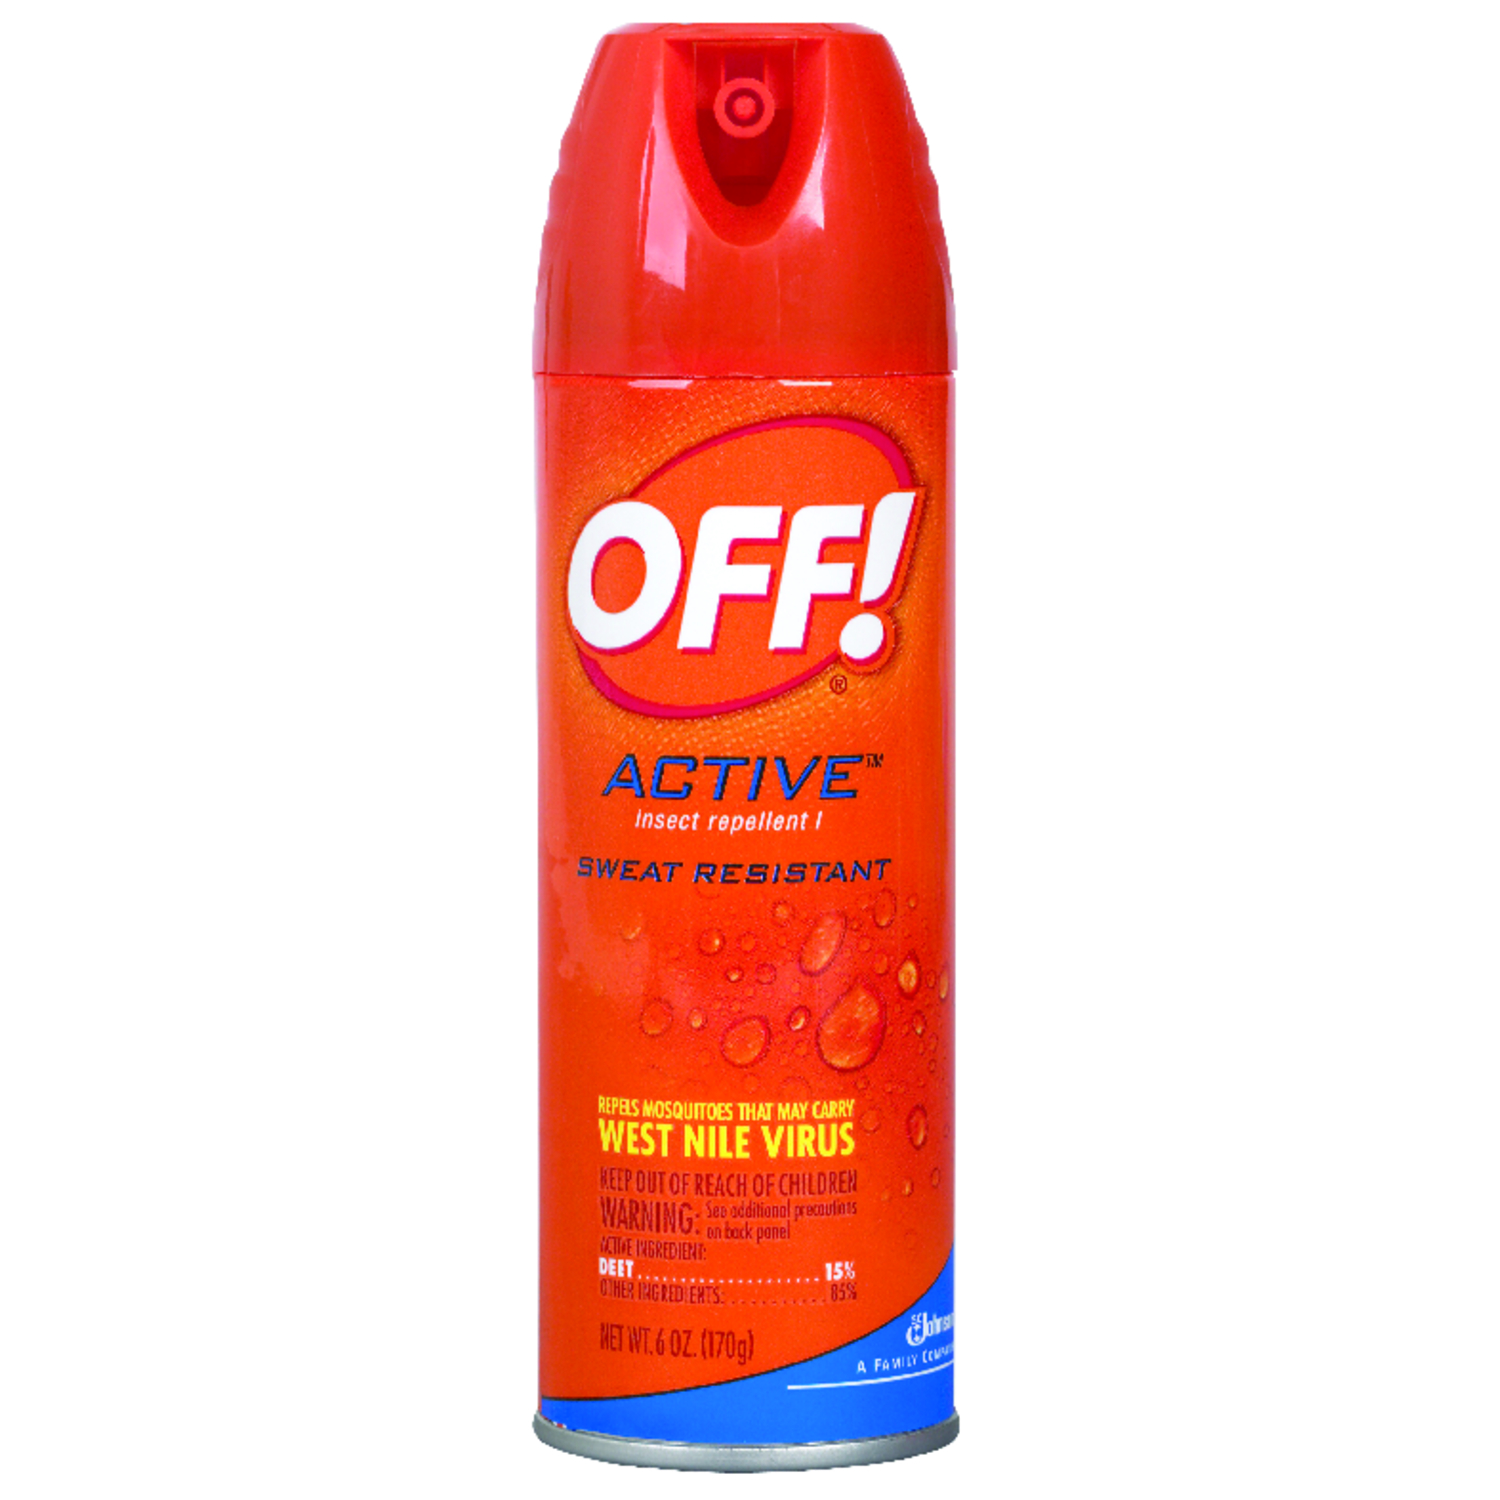 OFF!  Insect Repellent  For Flies, Mosquitoes, Mosquitoes/Other Flying Insects, Fleas 6 oz. Liquid